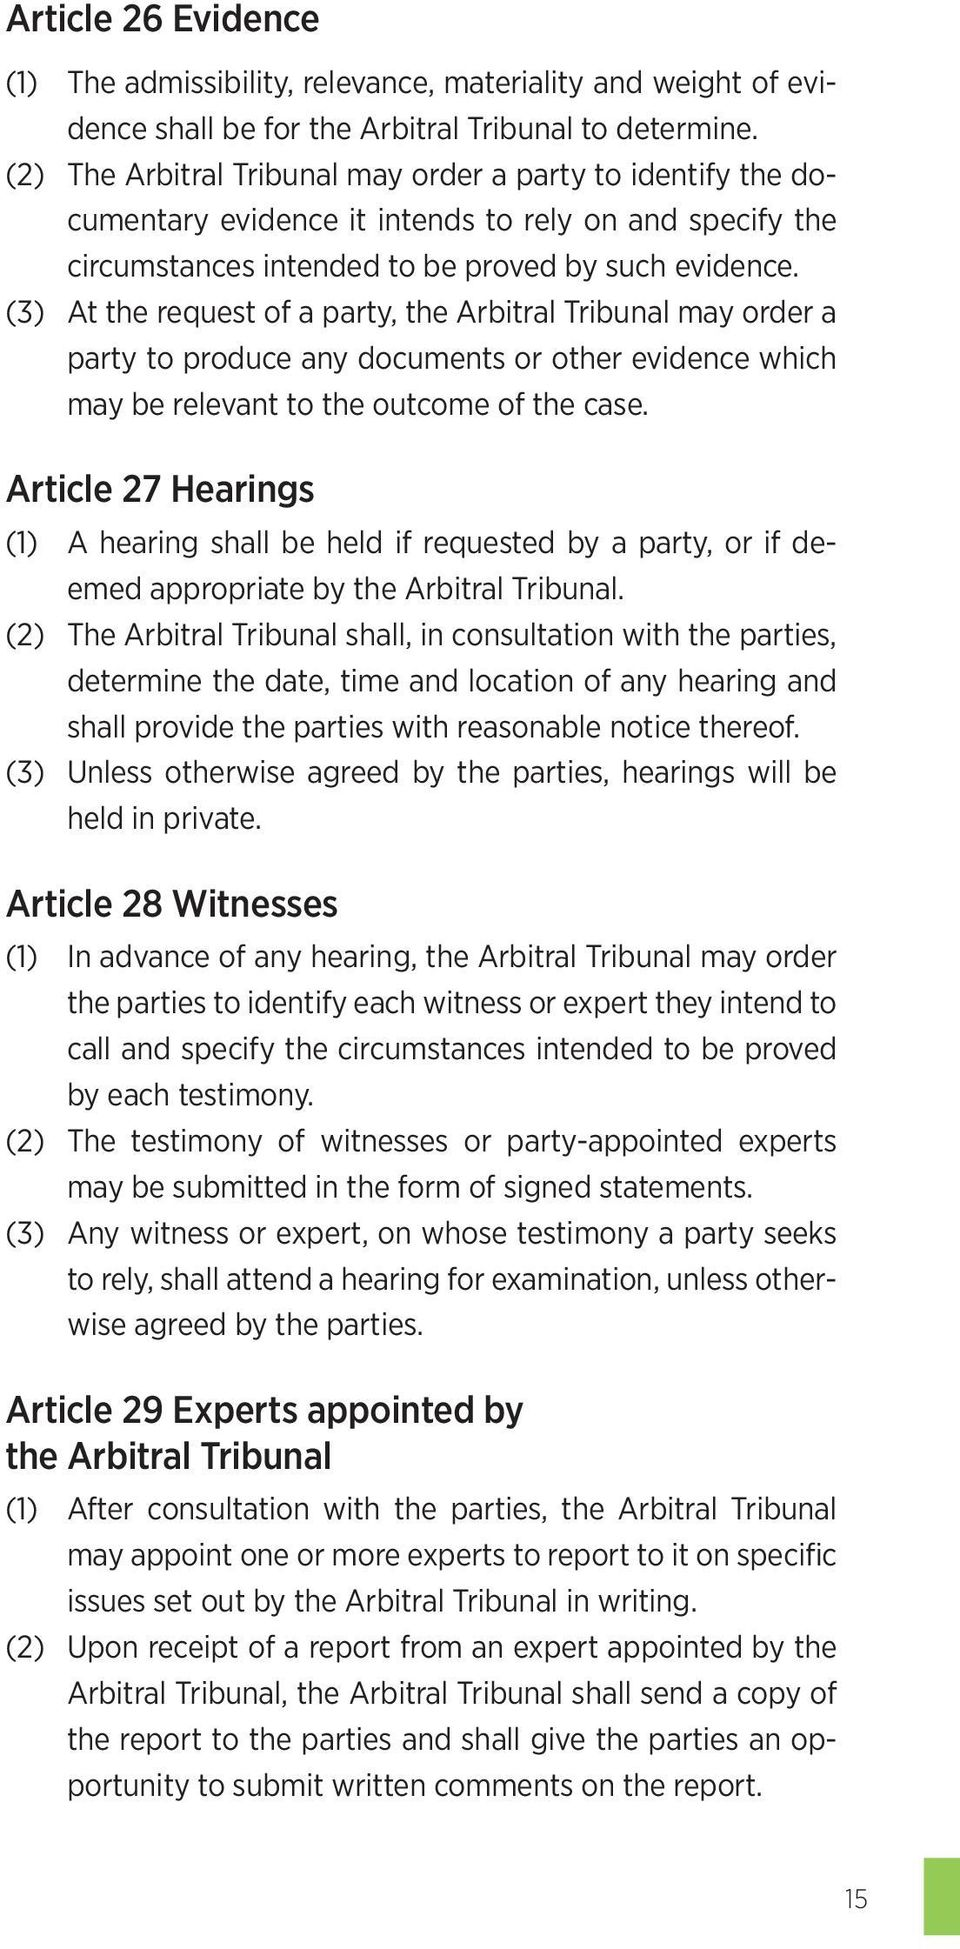 (3) At the request of a party, the Arbitral Tribunal may order a party to produce any documents or other evidence which may be relevant to the outcome of the case.